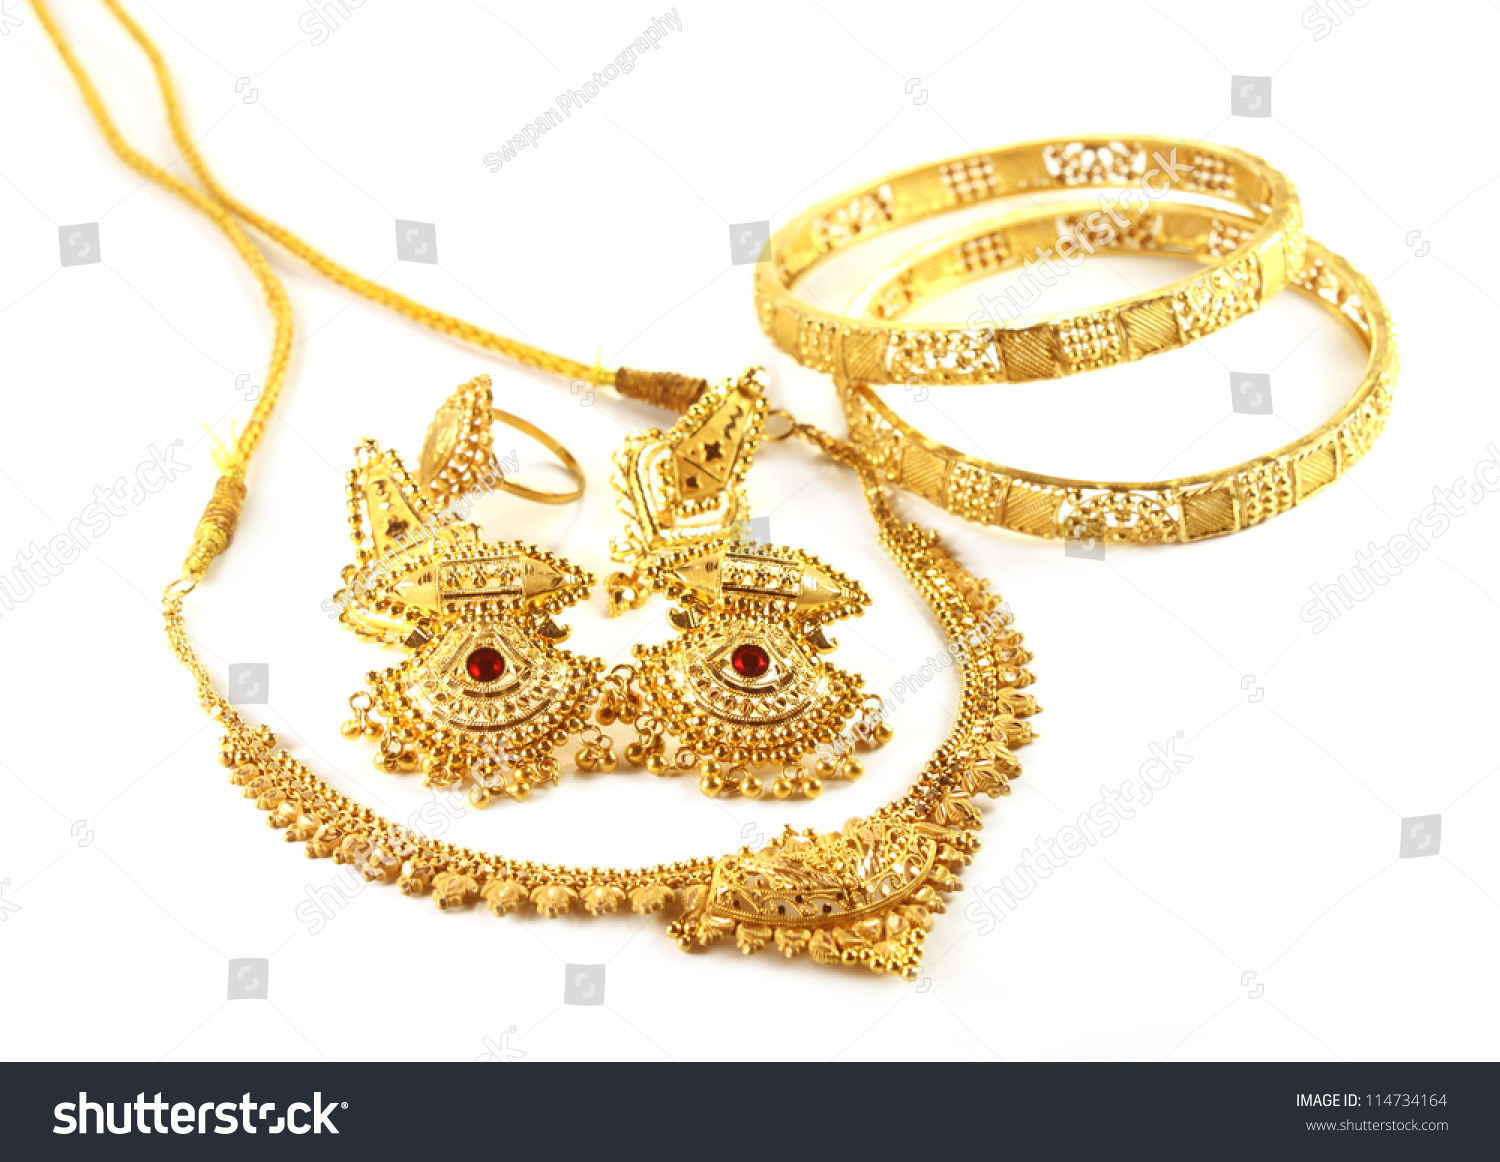 Wedding Gold Jewelry Indian Bride Stock Photo 114734164 - Shutterstock